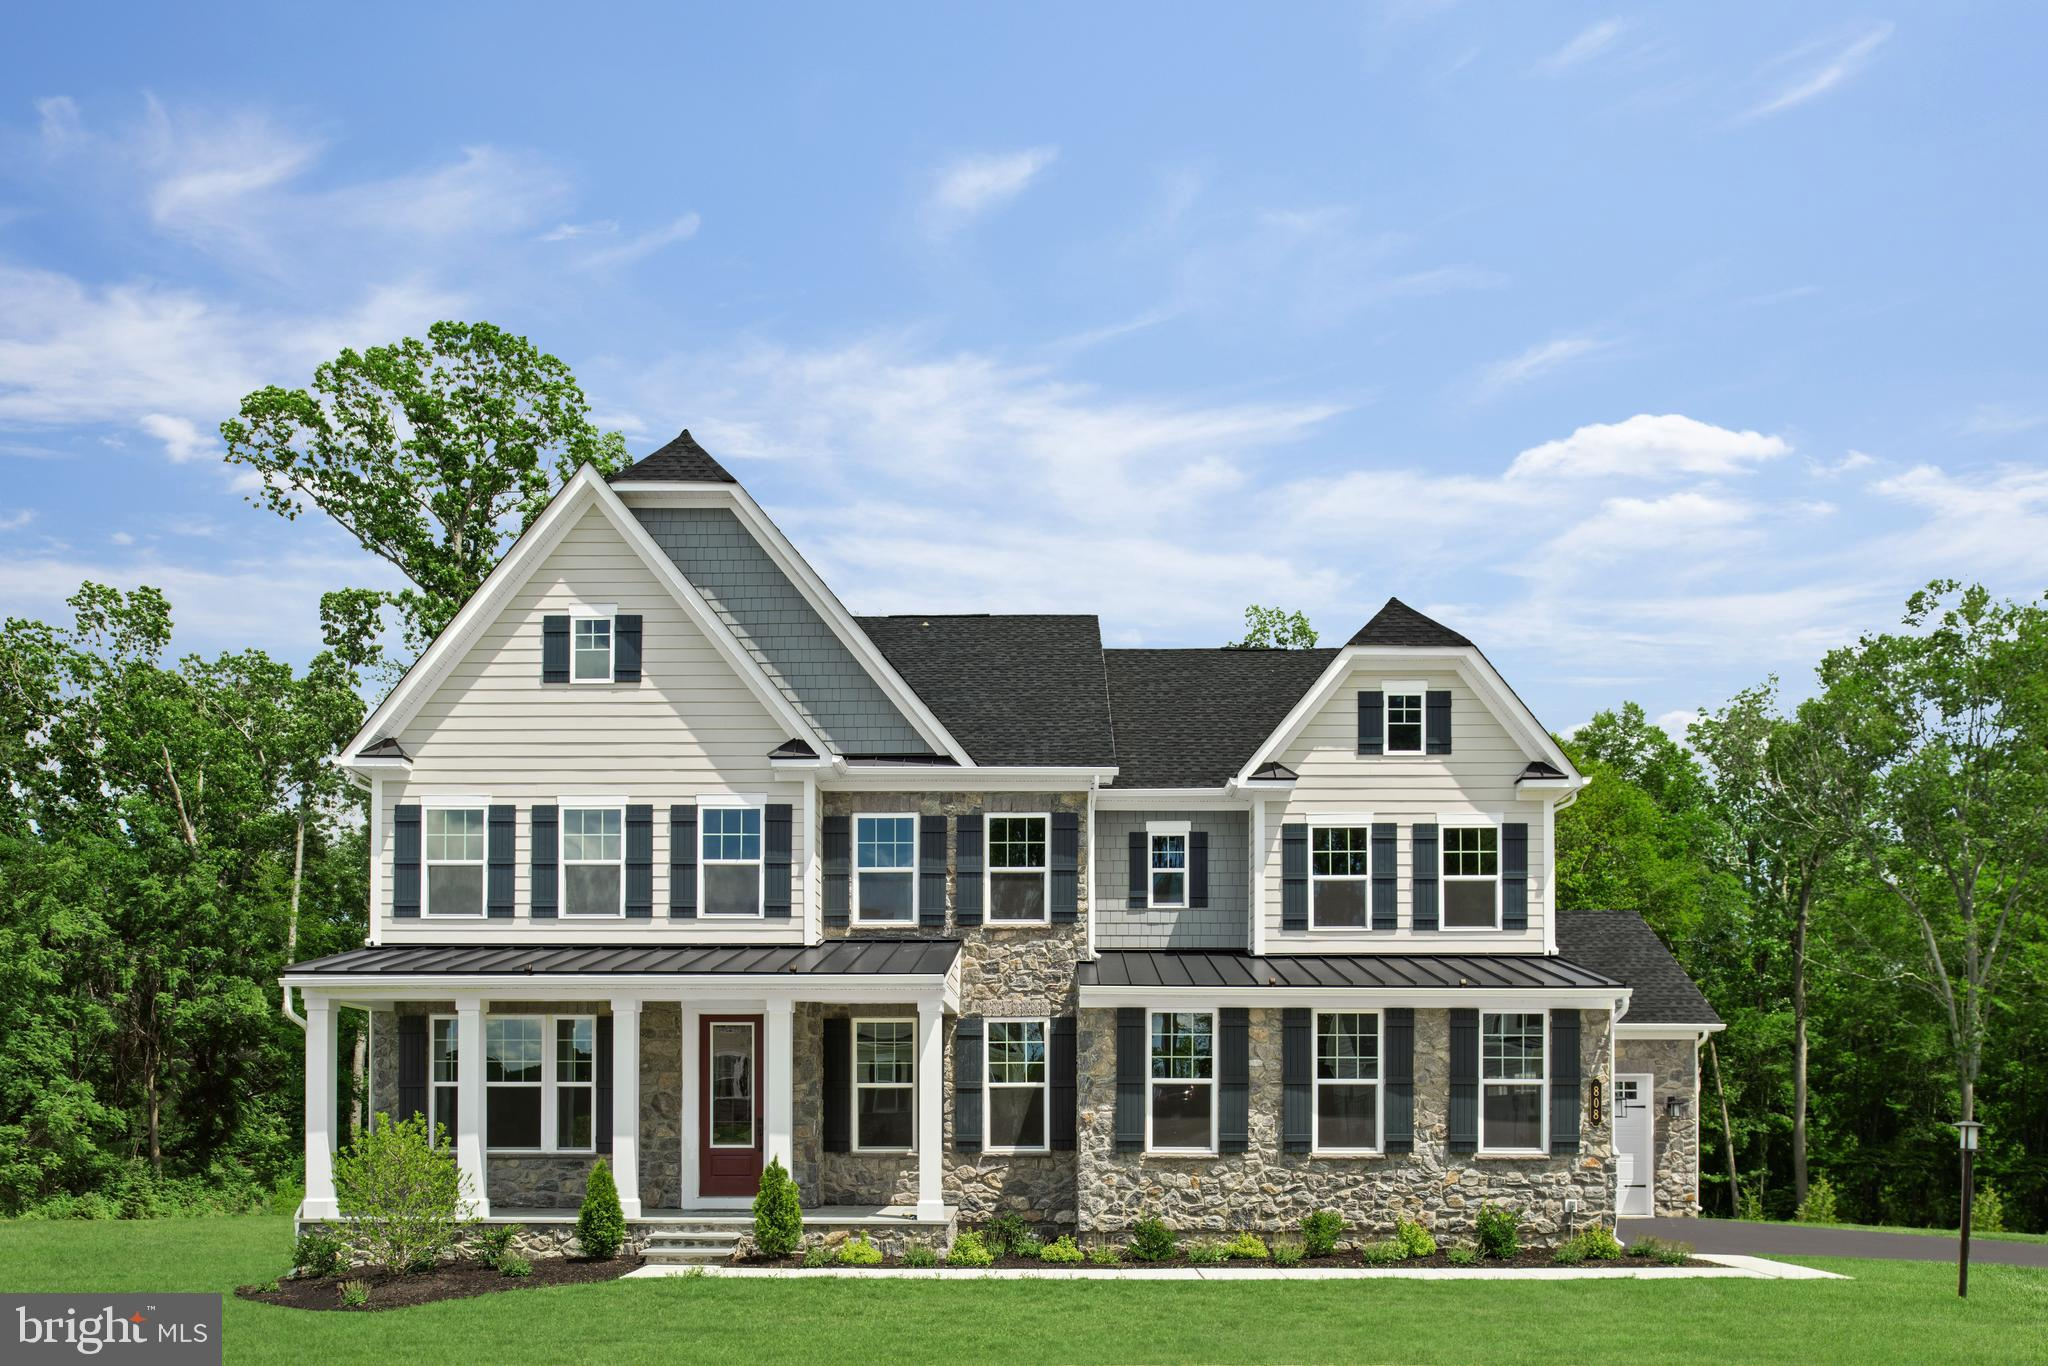 """Welcome to Greystone by NVHomes. Greystone features the only single family homes in a neighborhood with sidewalks, rolling hills, and seven miles of walking trails just minutes from the Borough. The Marymount at Greystone features all the beauty and craftsmanship you deserve in a new home. You will love the hardieplank facade and blue stone front stoops that welcome you home. . As you walk into the foyer youre greeted by light-filled spaces that feel welcoming. To one side, is the dining room, perfect for formal gatherings. To the other a flex room to make your own, whether its a living room, music room -- even add glass double doors and built-in book cases to make it a library. Past a switch back, oak stair a gourmet kitchen with an oversized island that acts as the command center of the home, giving you a practical and functional space thats still elegant. Upgraded features including CushionClose cabinetry, quartz countertops, and 5"""" hardwood floors. The dinette is perfect for cozy family meals and the family room gives plenty of gathering space. Off of the 2 car side entry garage, you will enter into a family entrance with an arrival center and walk-in closet providing you with plenty of storage. Option for 3 or 4 car garage available. A double-door study makes work-from-home a viable concept, or make it a first-floor suite, perfect for guests. The second floor continues to give you the same sense of arrival as on the first floor with a wide hallway. Each of the bedrooms features a large walk-in closet and has access to a bathroom. But the true story luxury is shown in the primary suite. From its dramatic double door entry, this suite lives like a private retreat, providing two enormous walk-in closets, one with a full-length mirror; a tucked-away sitting area; and a spa-like bathroom with dual quartz vanities, roman shower, and a compartmentalized water closet. Your included finished basement with full bathroom gives you even more room to spread out!  Other floo"""